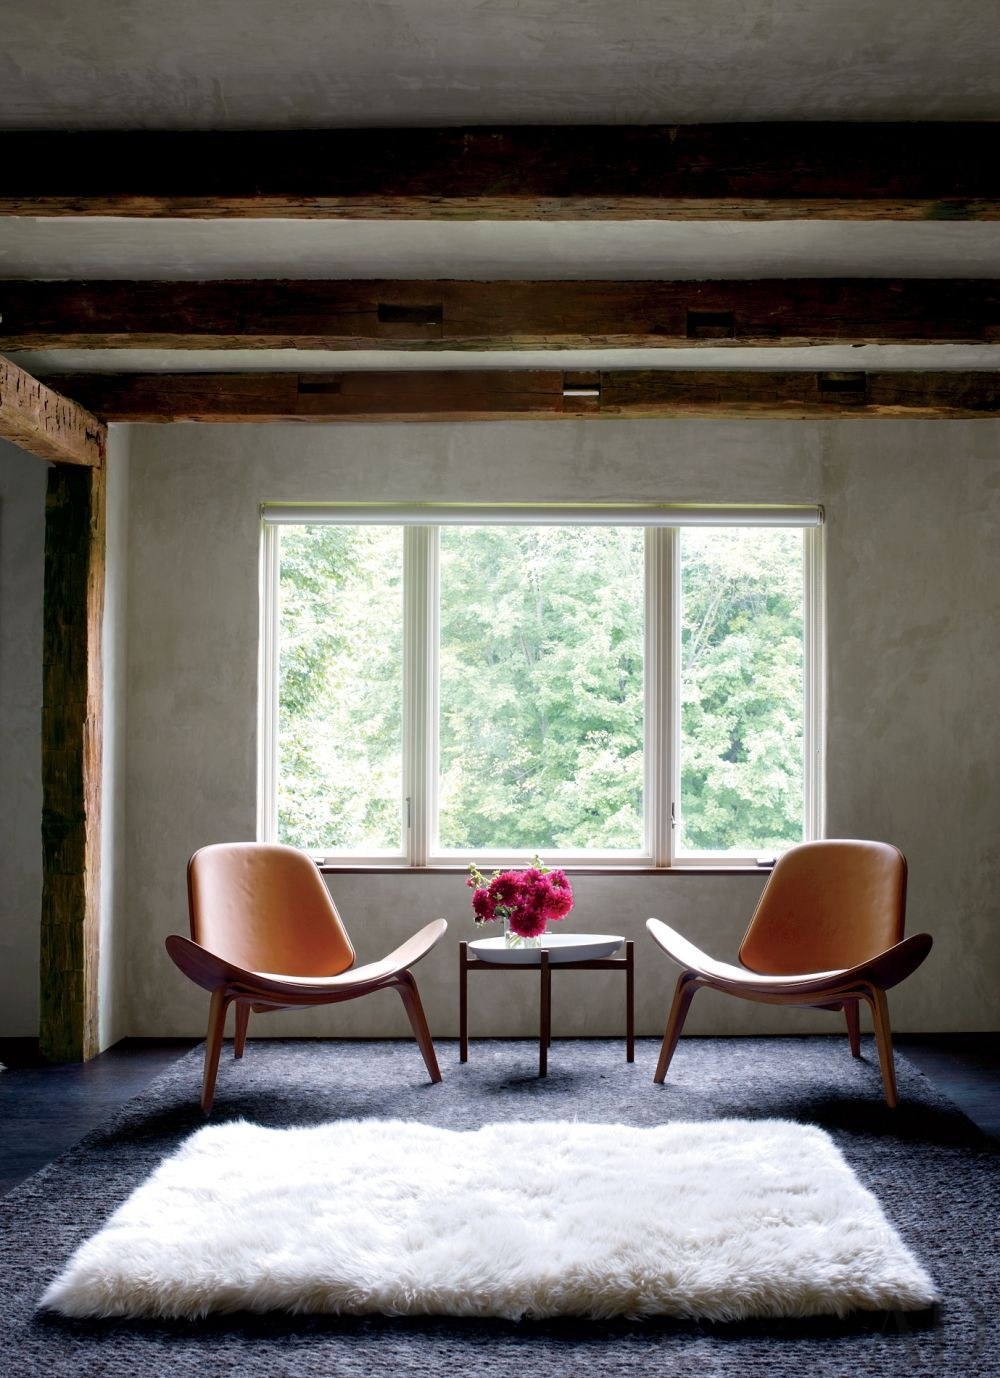 Rustic Living Room By Studio Sofield By Architectural: Rustic Bedroom By Bonetti/Kozerski Studio By Architectural